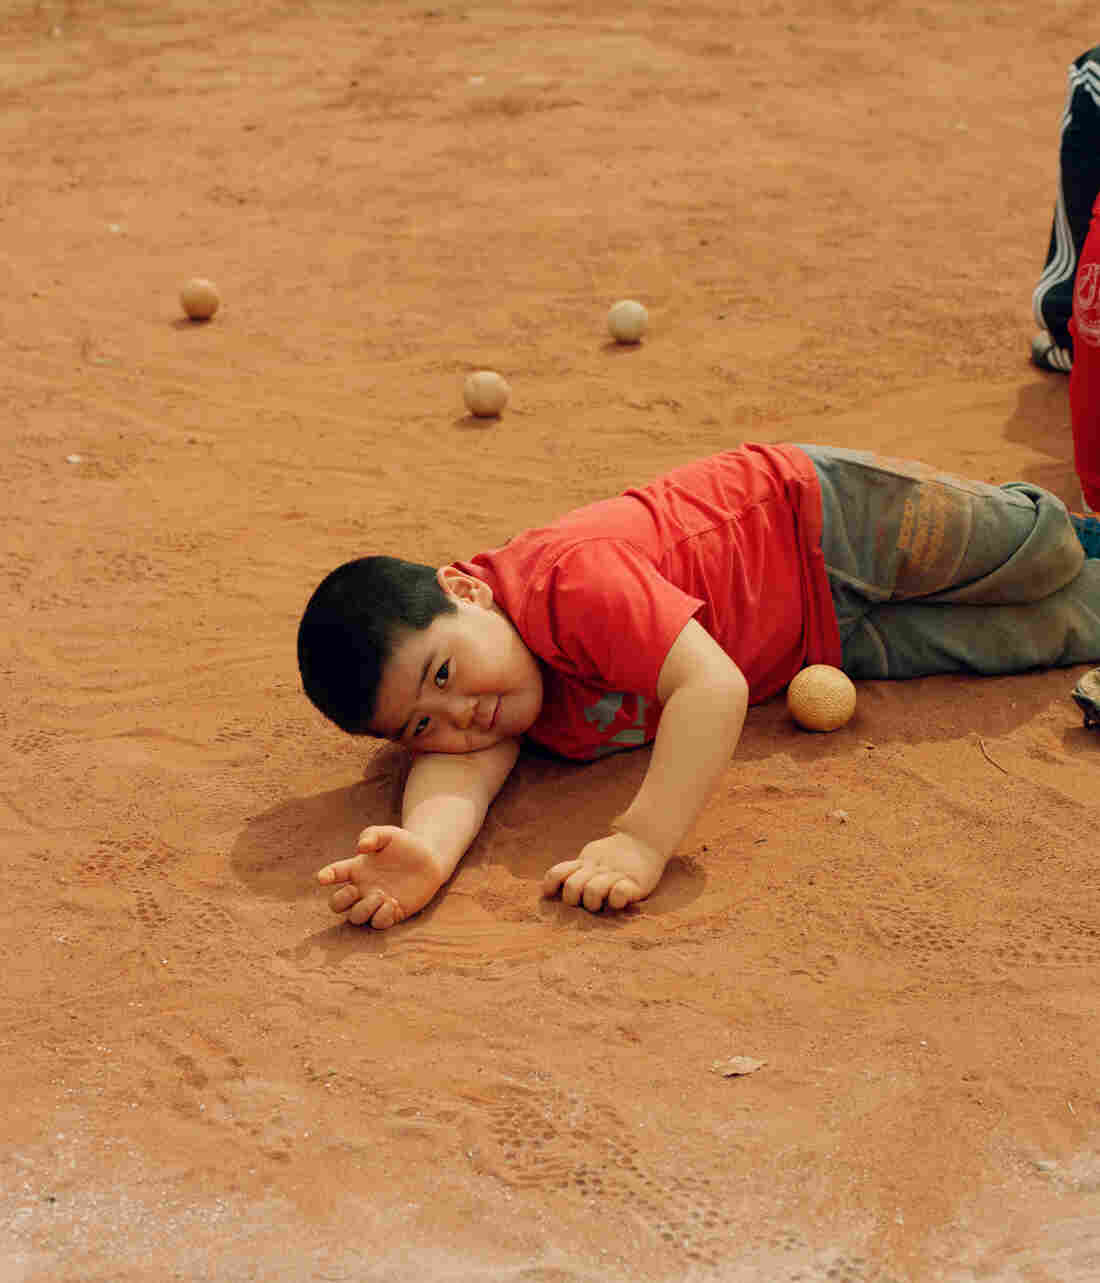 A boy lays on the baseball field